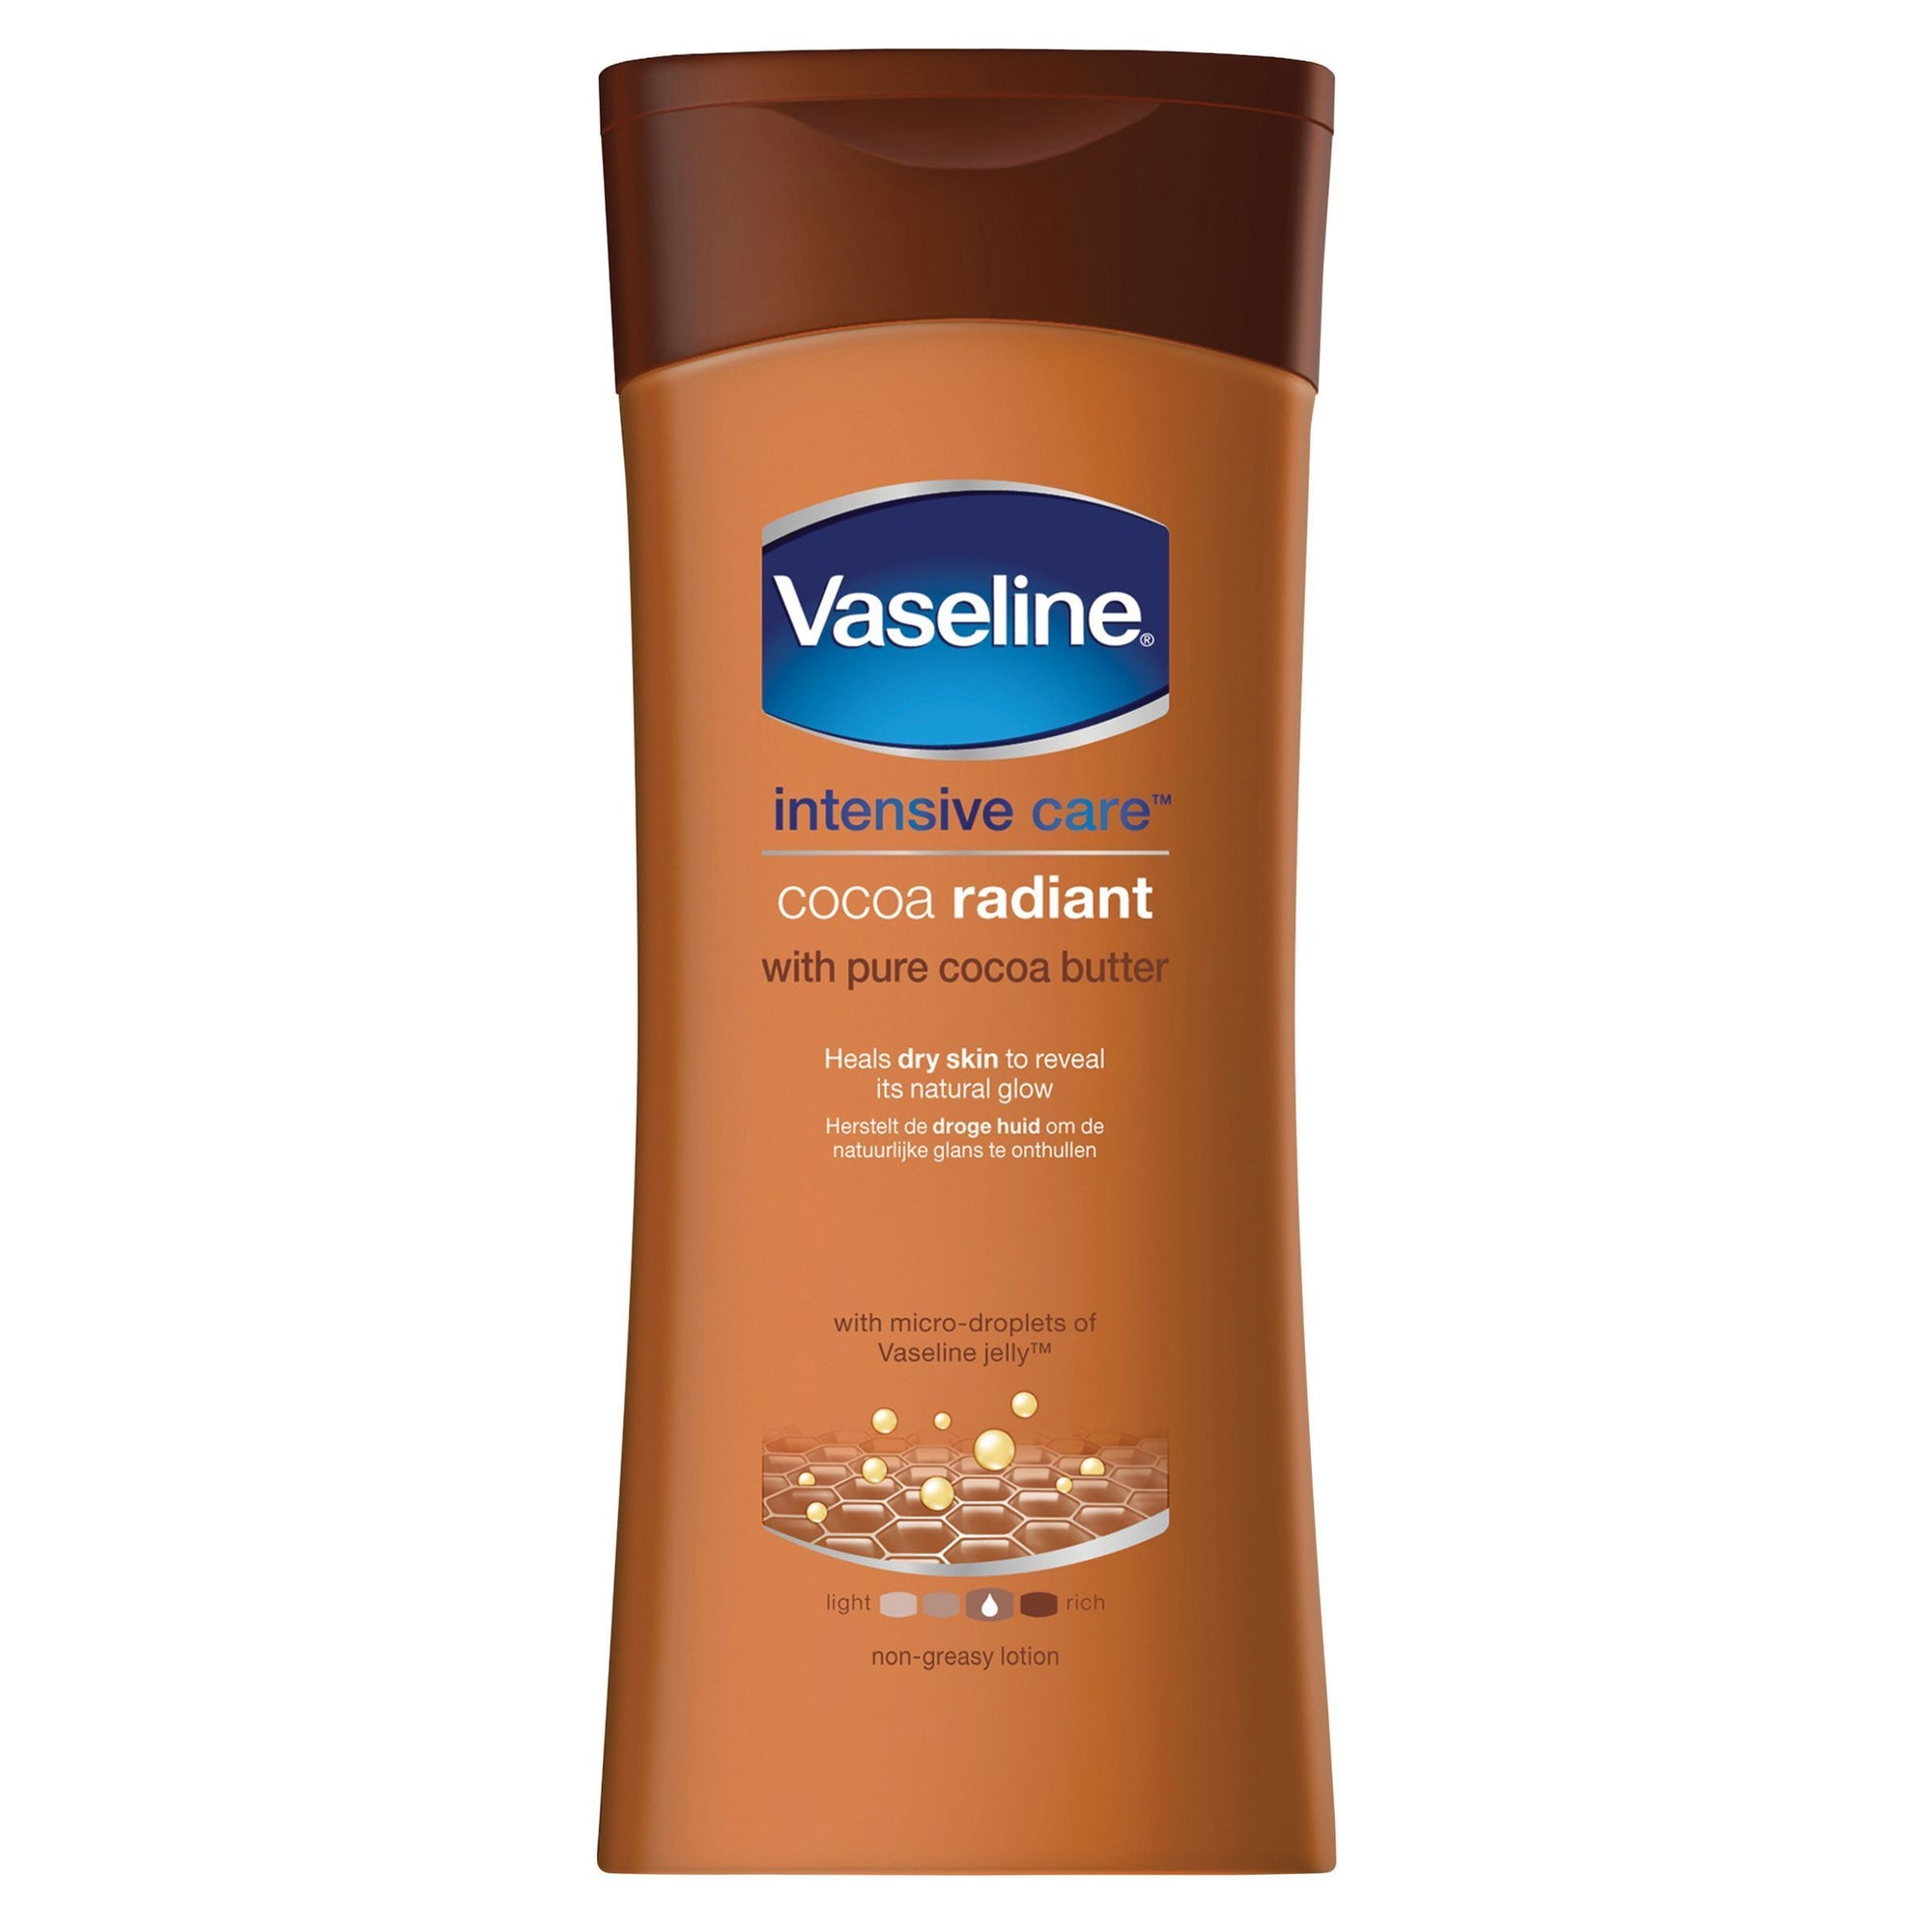 Vaseline Body Lotion Cocoa Radiant 400ml - Pack of 6 (Sty-VSCCRAD)